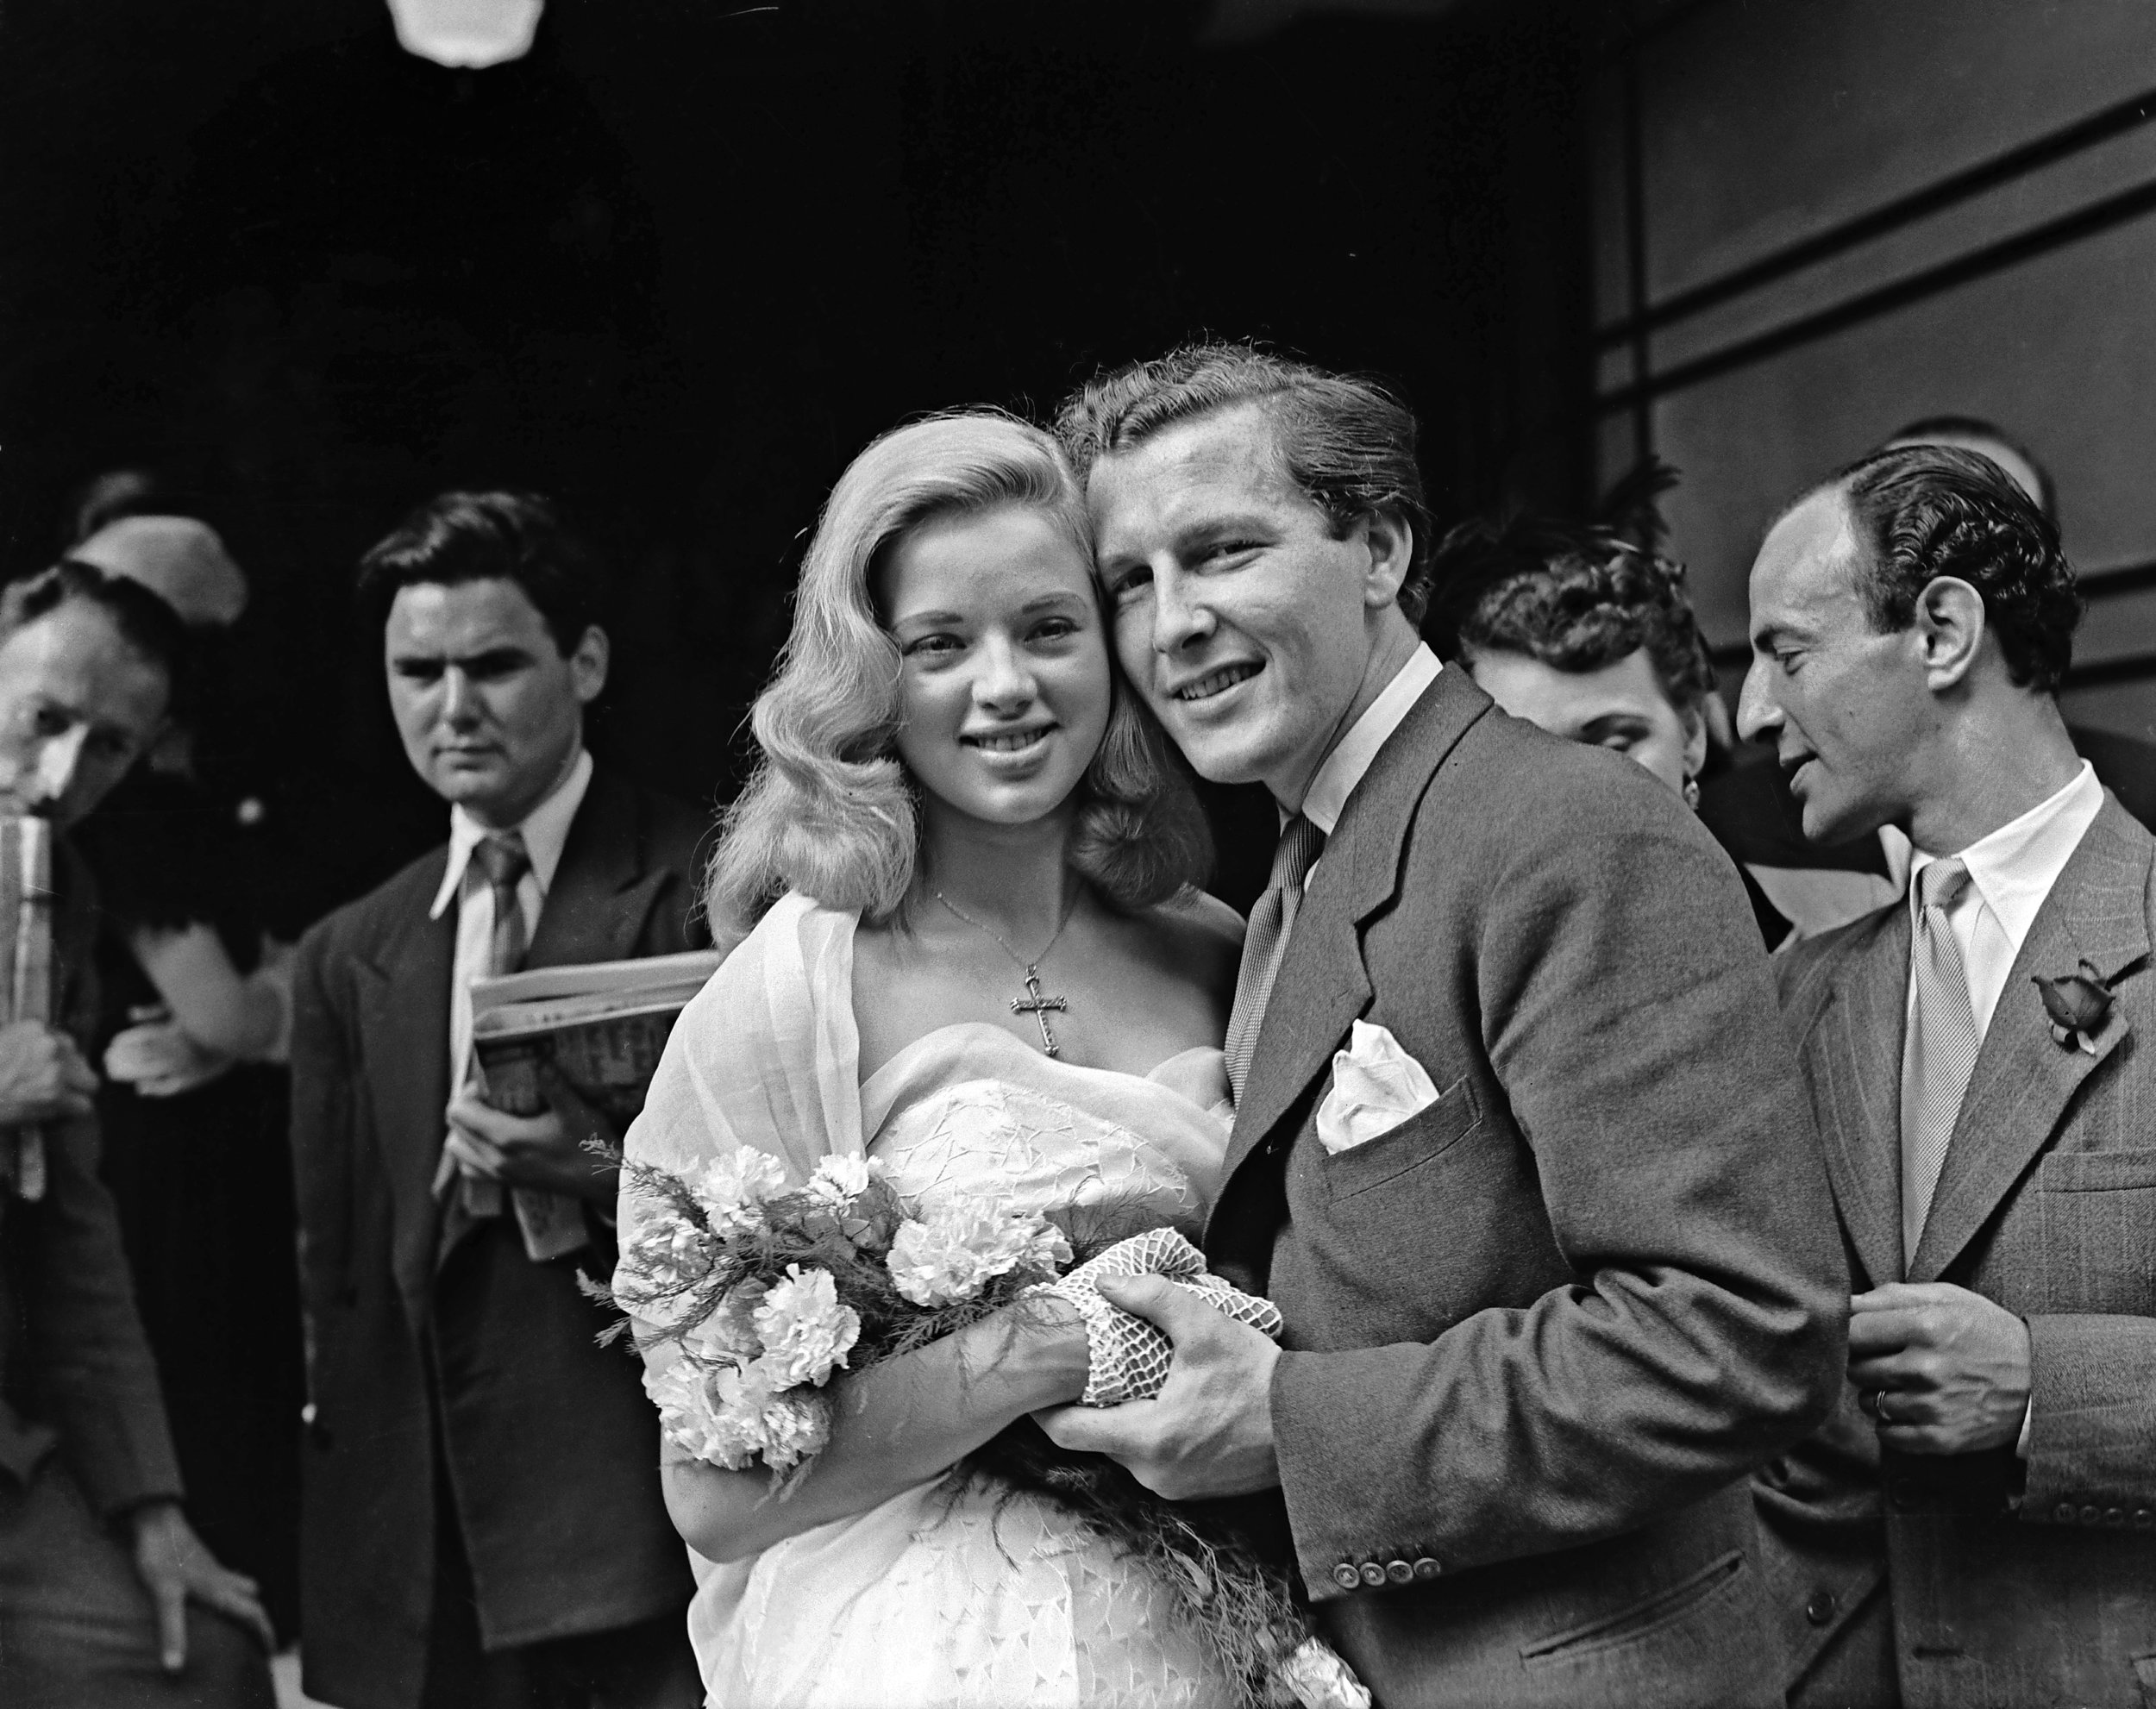 Diana and Dennis on their wedding day (1951): the marriage was unhappy and violent